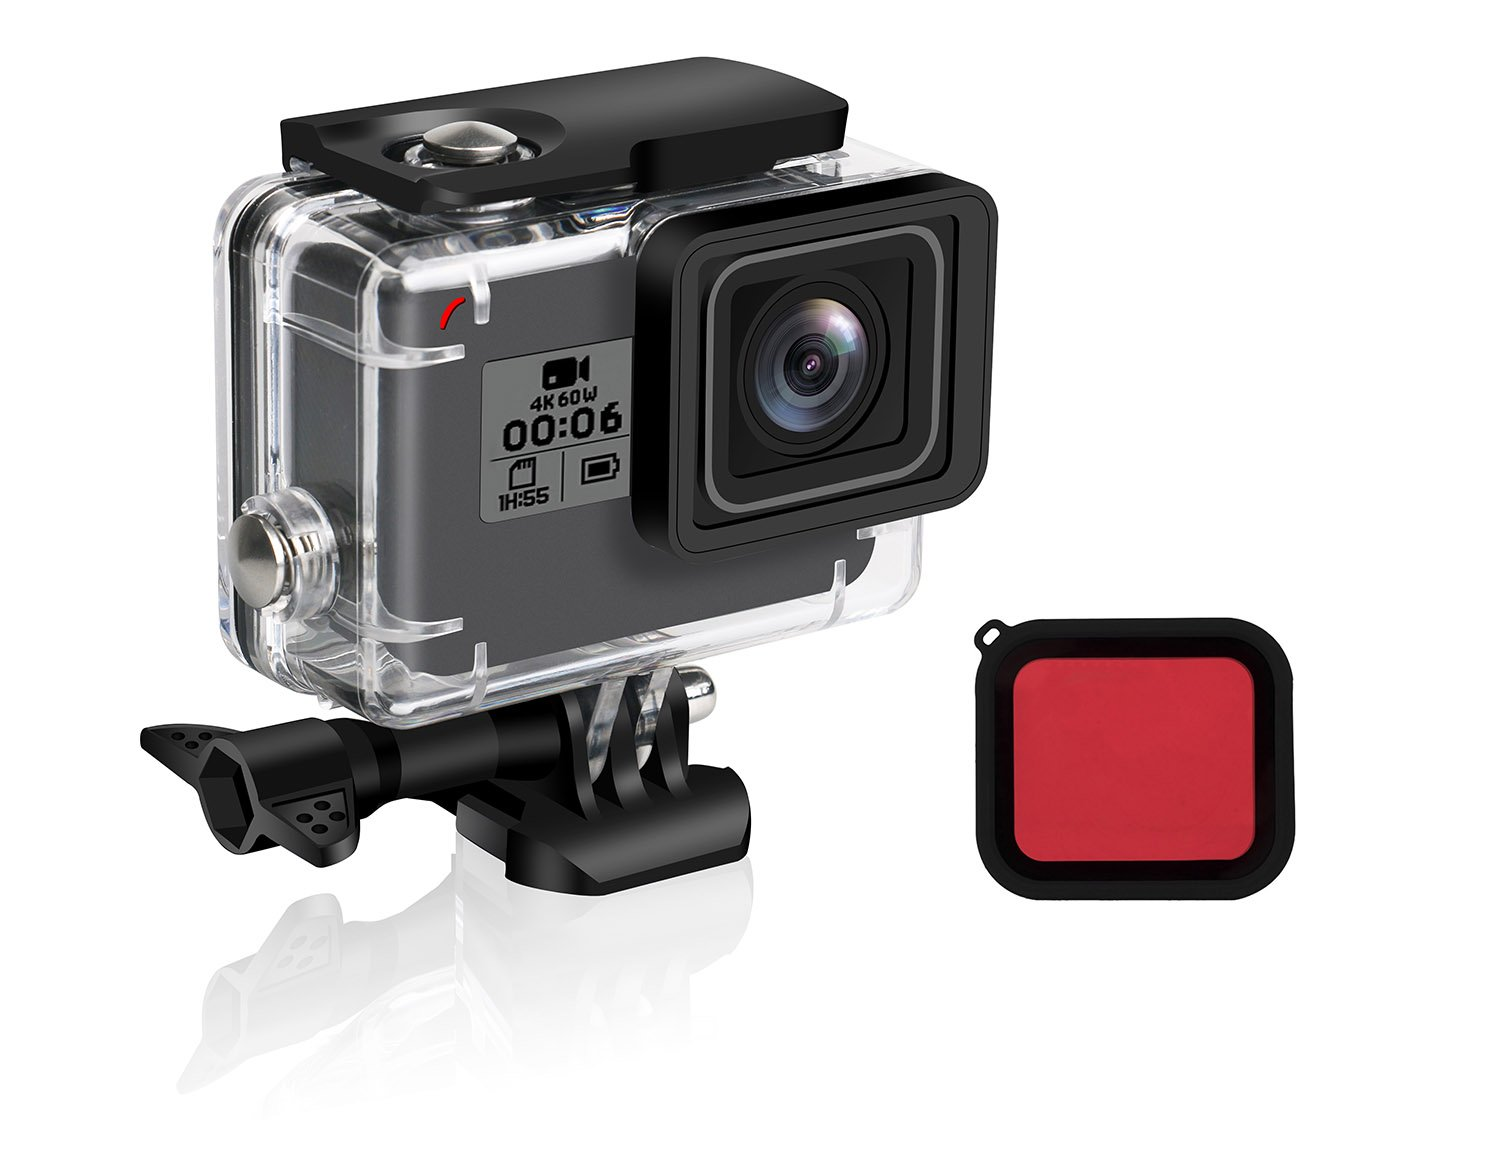 FINEST+ Waterproof Housing Shell for GoPro Hero 7/2018/6/5 Black Diving Protective Housing Case 45m with Red Filter and Bracket Accessories for Go Pro Hero7/(2018) 6/5 Action Camera by FINEST+